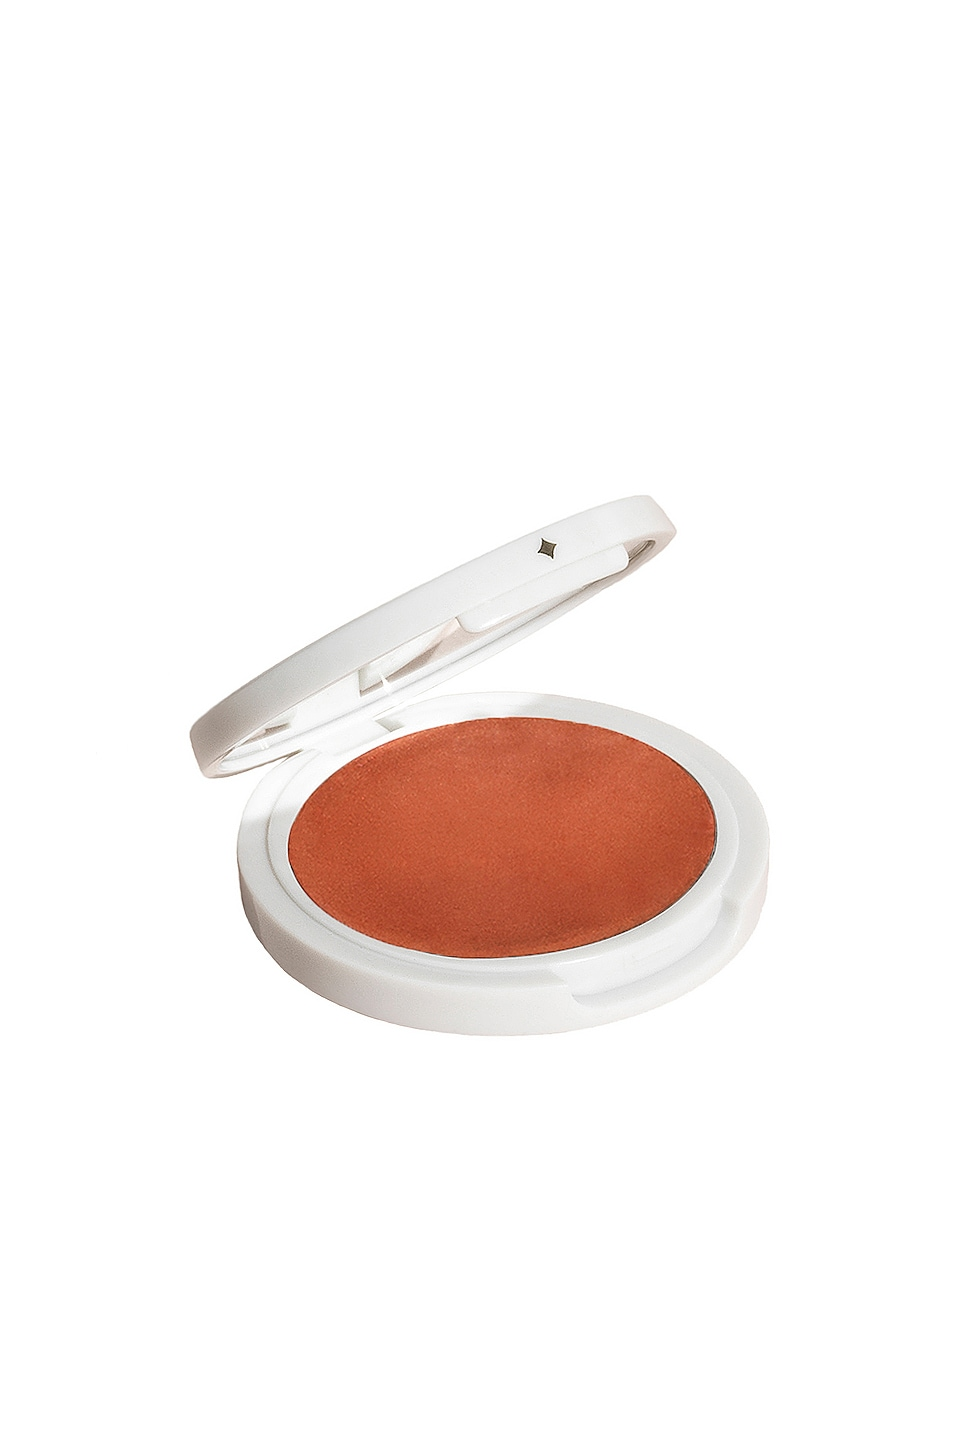 Jillian Dempsey Lid Tint Satin Eye Shadow in Glimmer